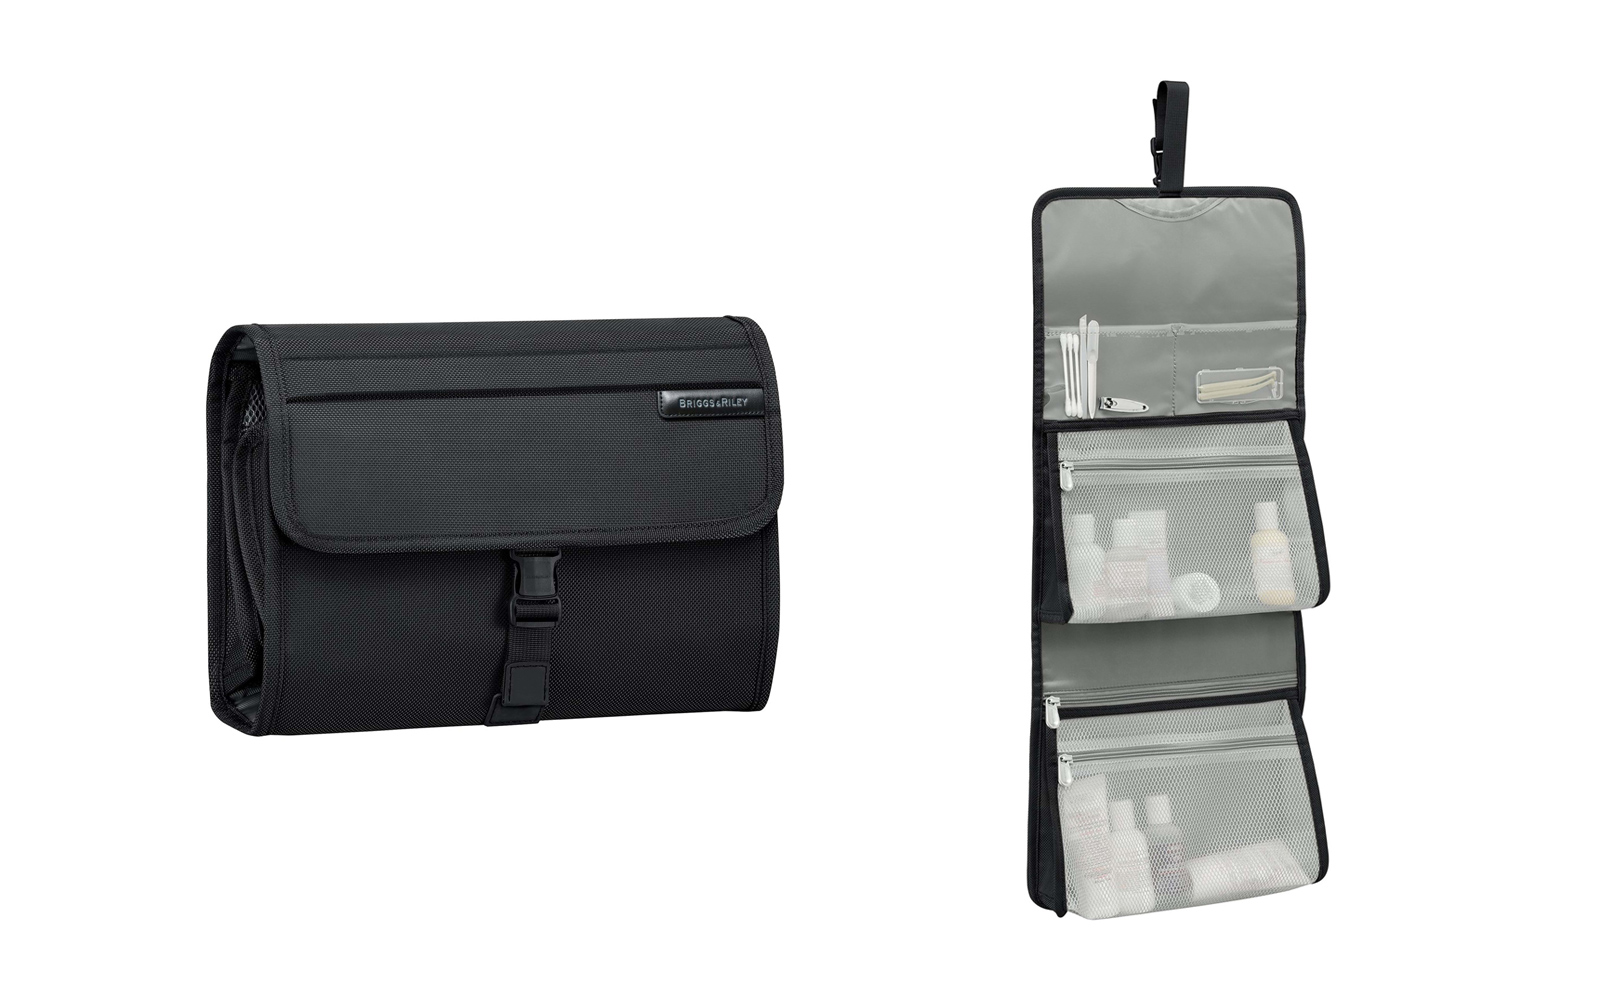 Nordstrom, Baseline Deluxe Hanging Toiletry Kit, Best Gifts for Business Travelers